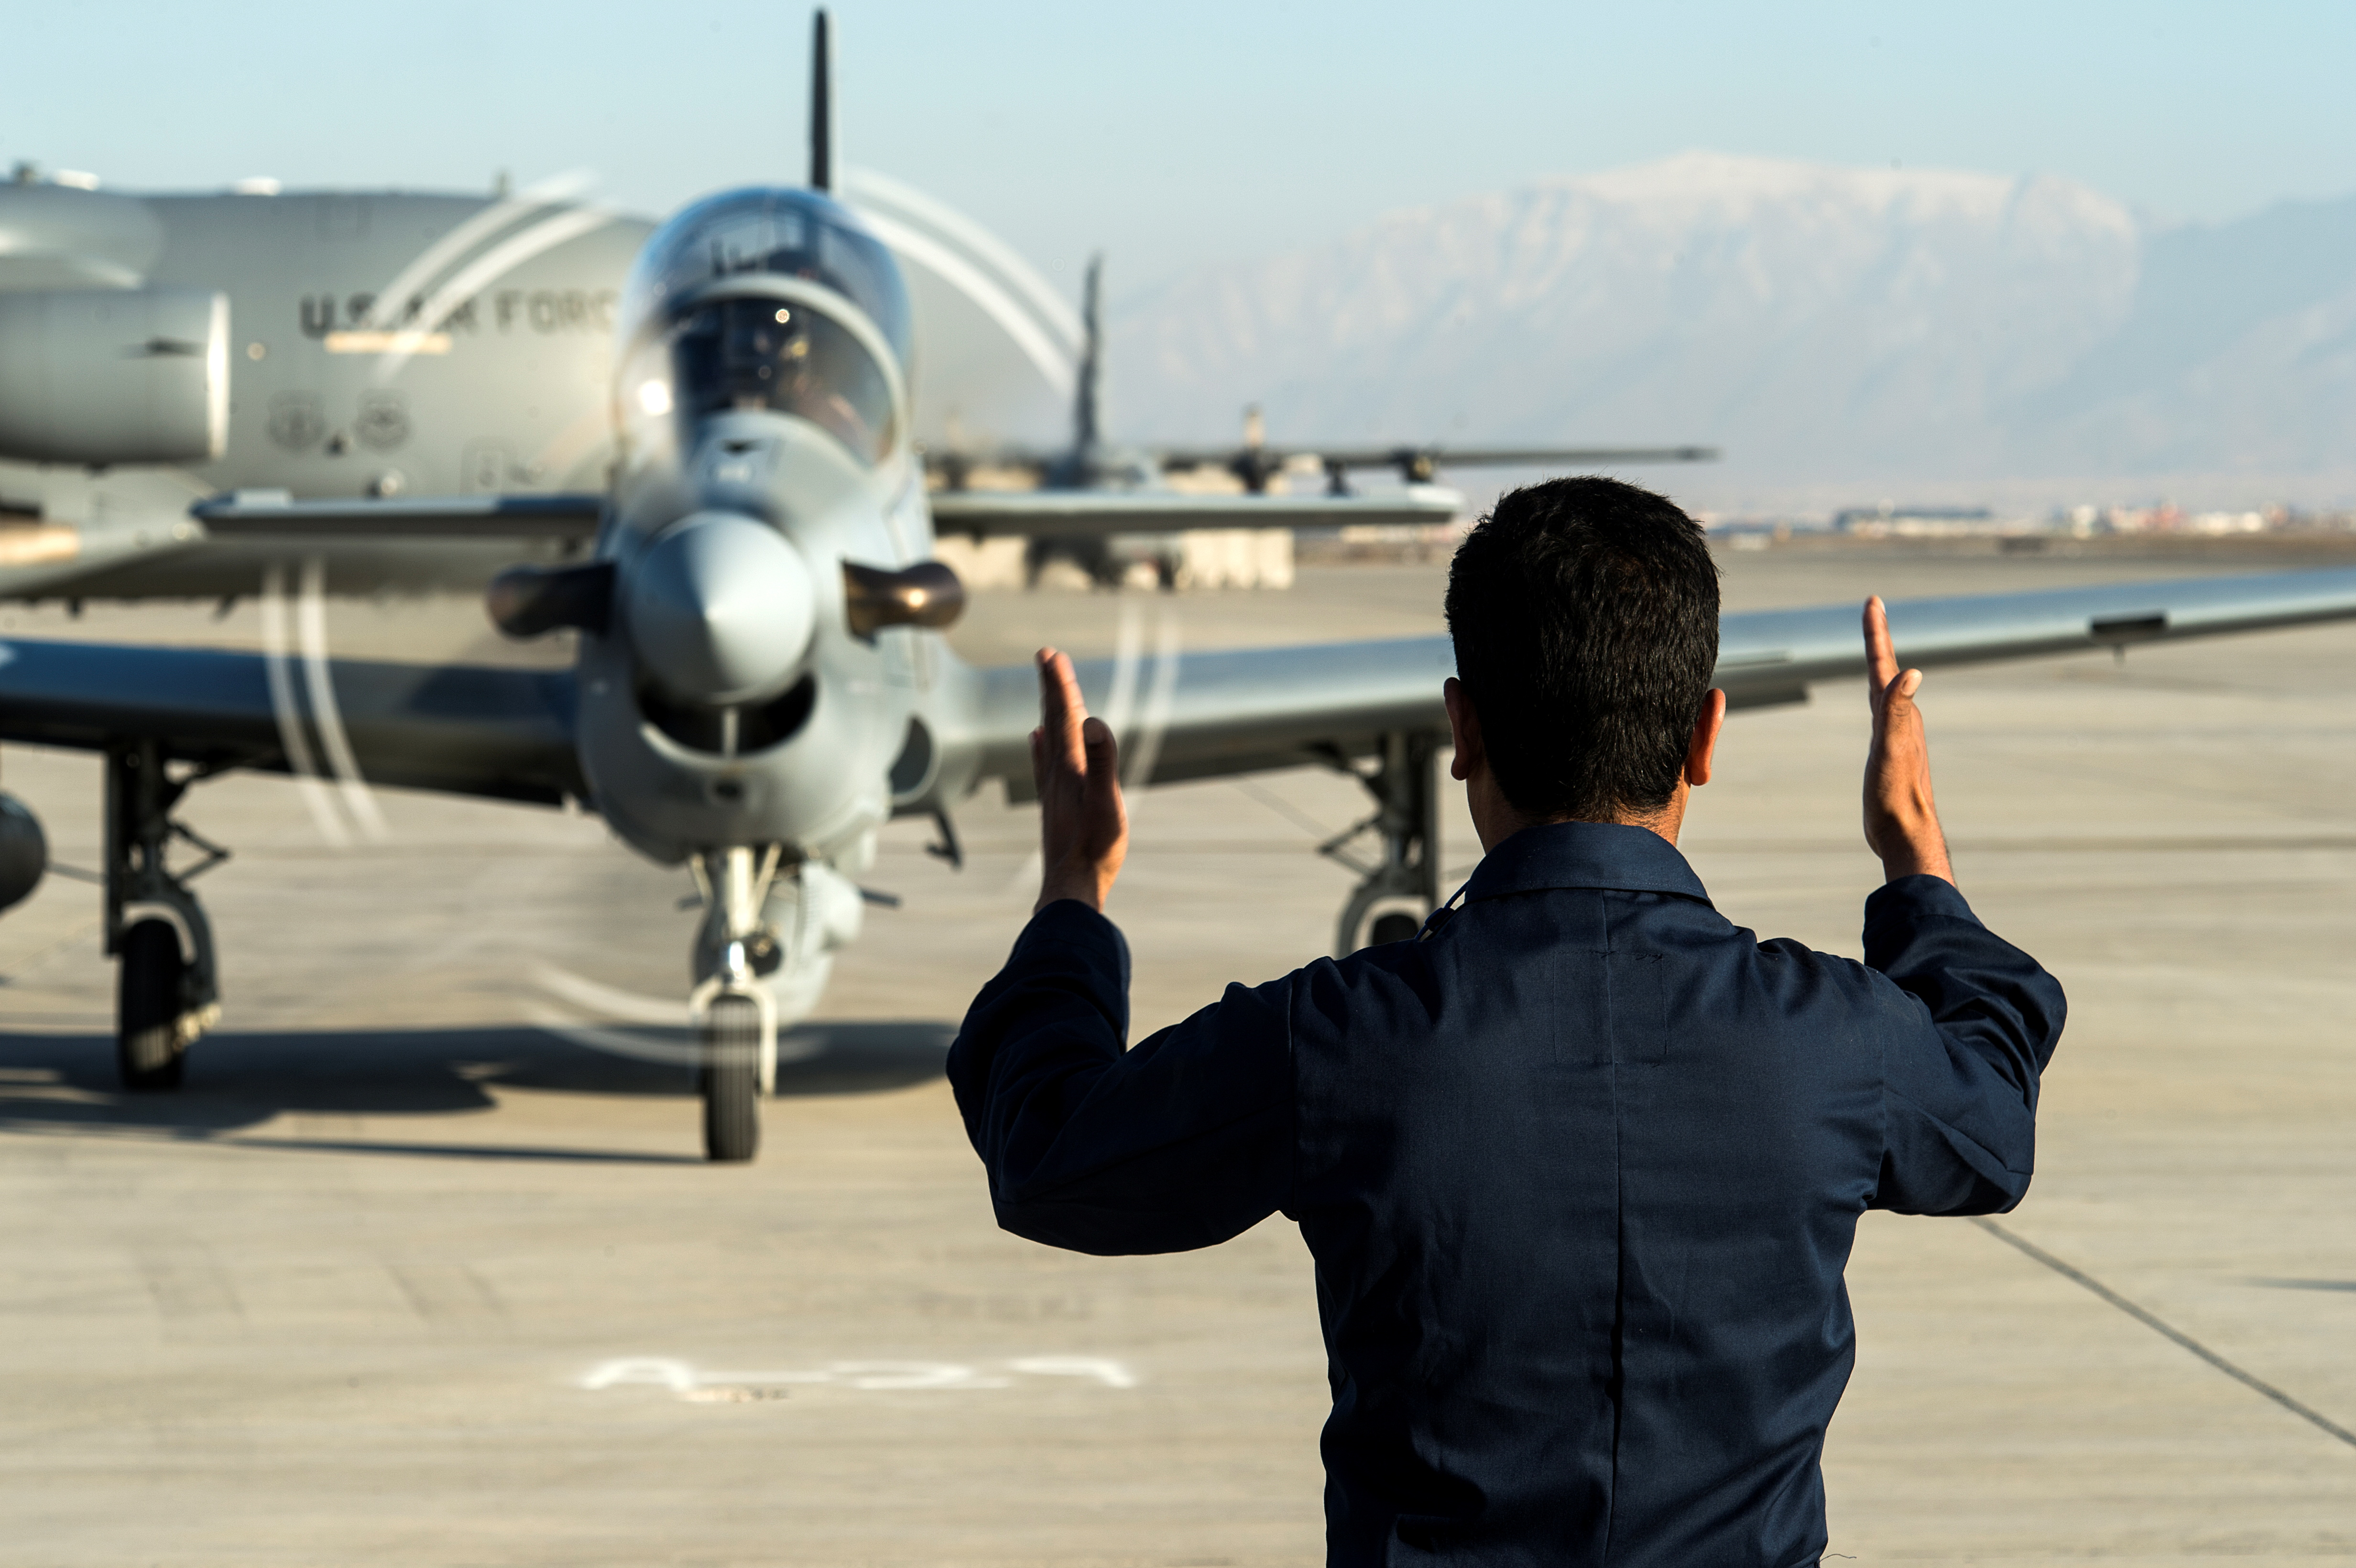 A member of the Afghan air force marshals in an A-29 Super Tucano at Hamid Karzai International Airport near Kabul, Afghanistan, January 15, 2016. Picture taken January 15, 2016. To match Special Report USA-AFGHANISTAN/PILOTS  U.S. Air Force/Tech. Sgt. Nathan Lipscomb/Handout via REUTERS